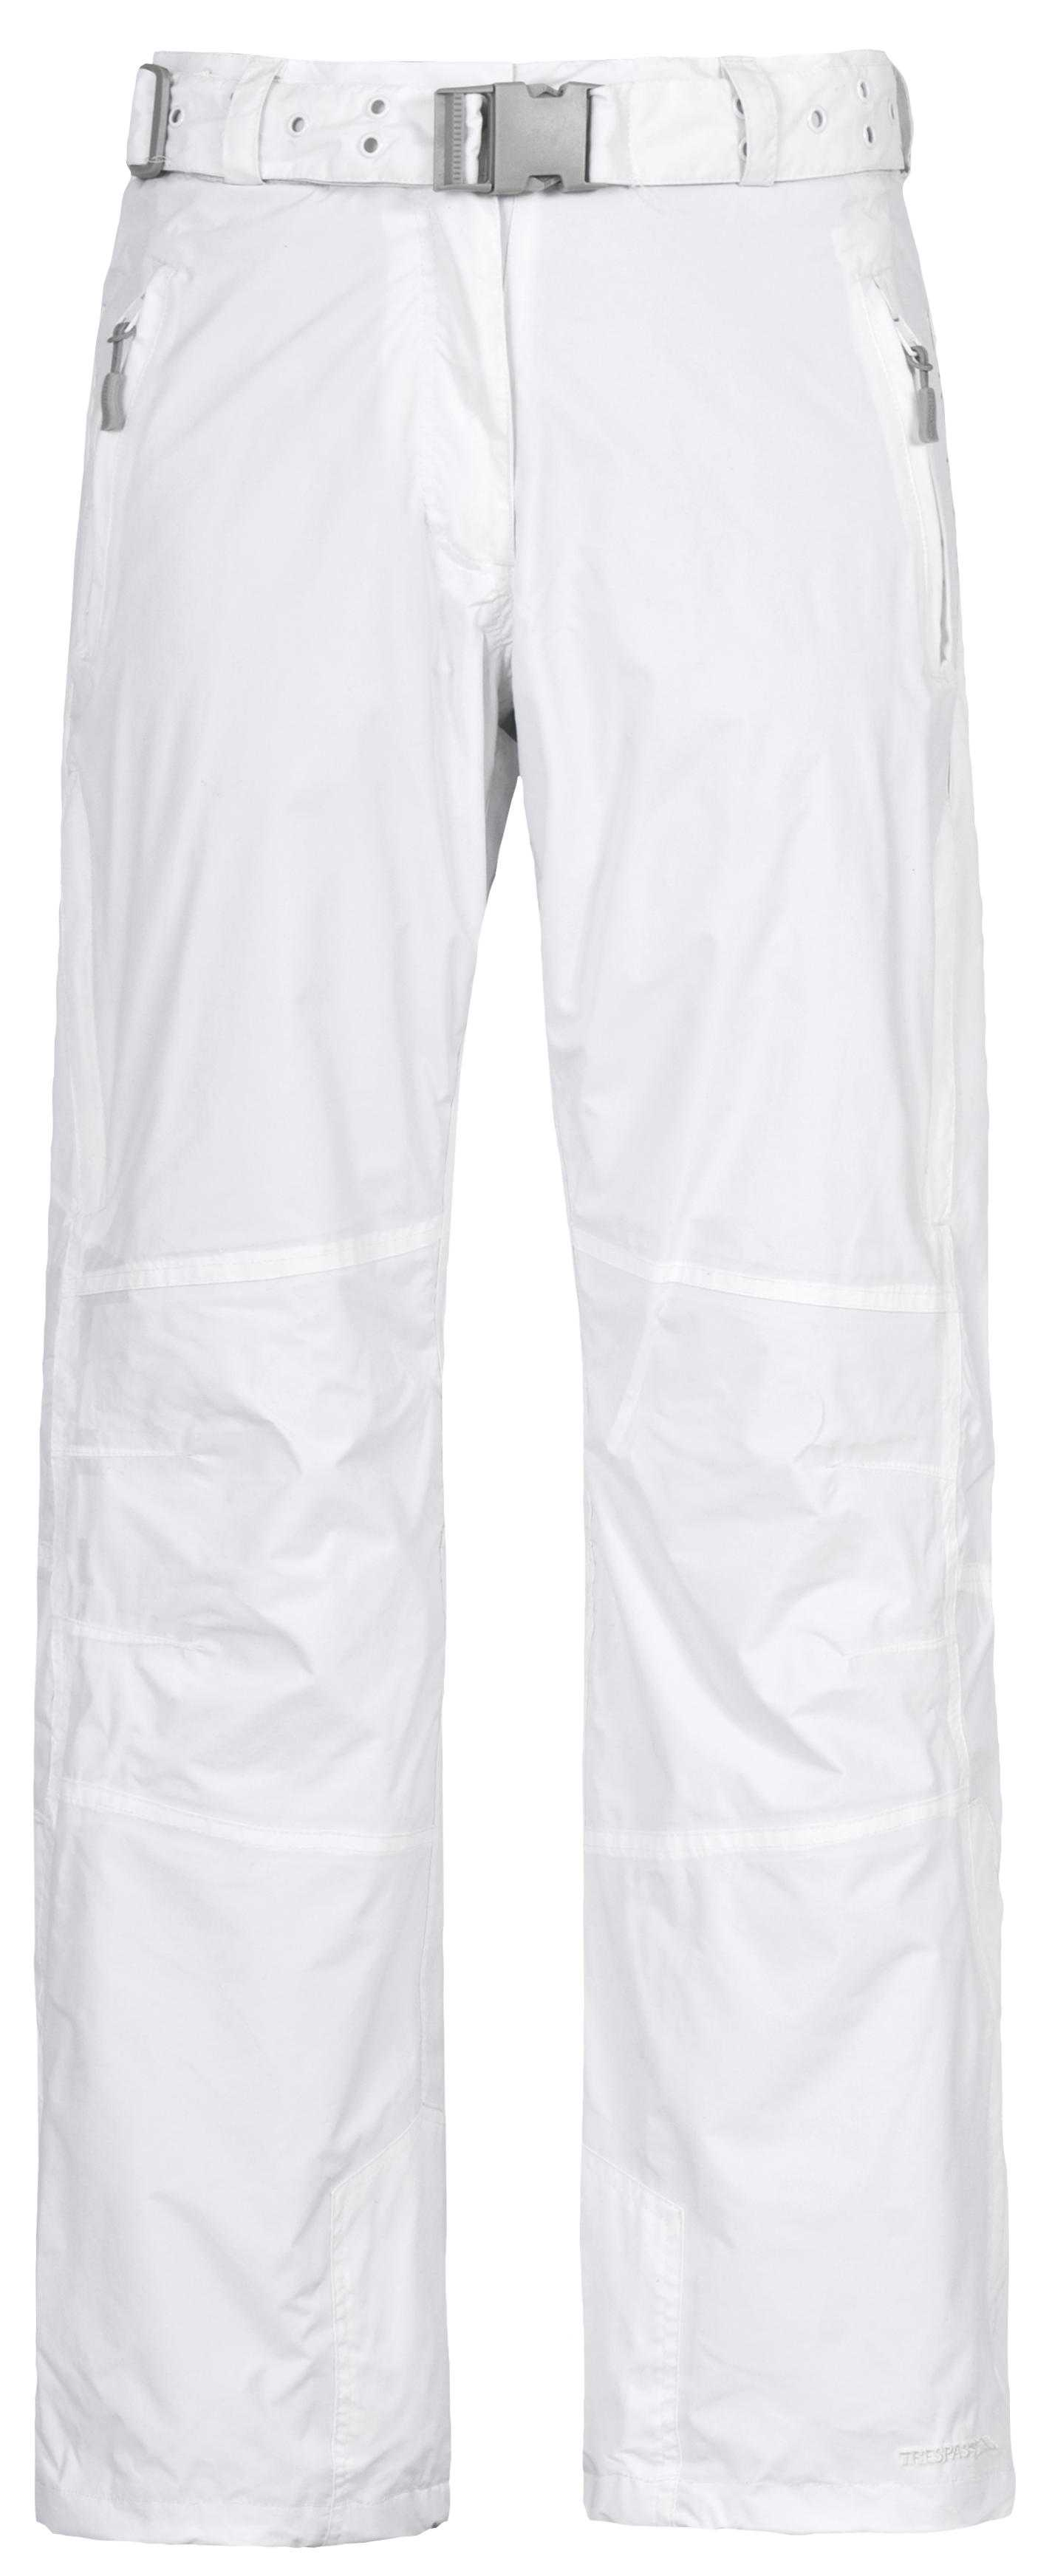 Ladies Womens TRESPASS FUSE Waterproof Ski Pants Trousers WHITE SIZE 18 XXL Enlarged Preview